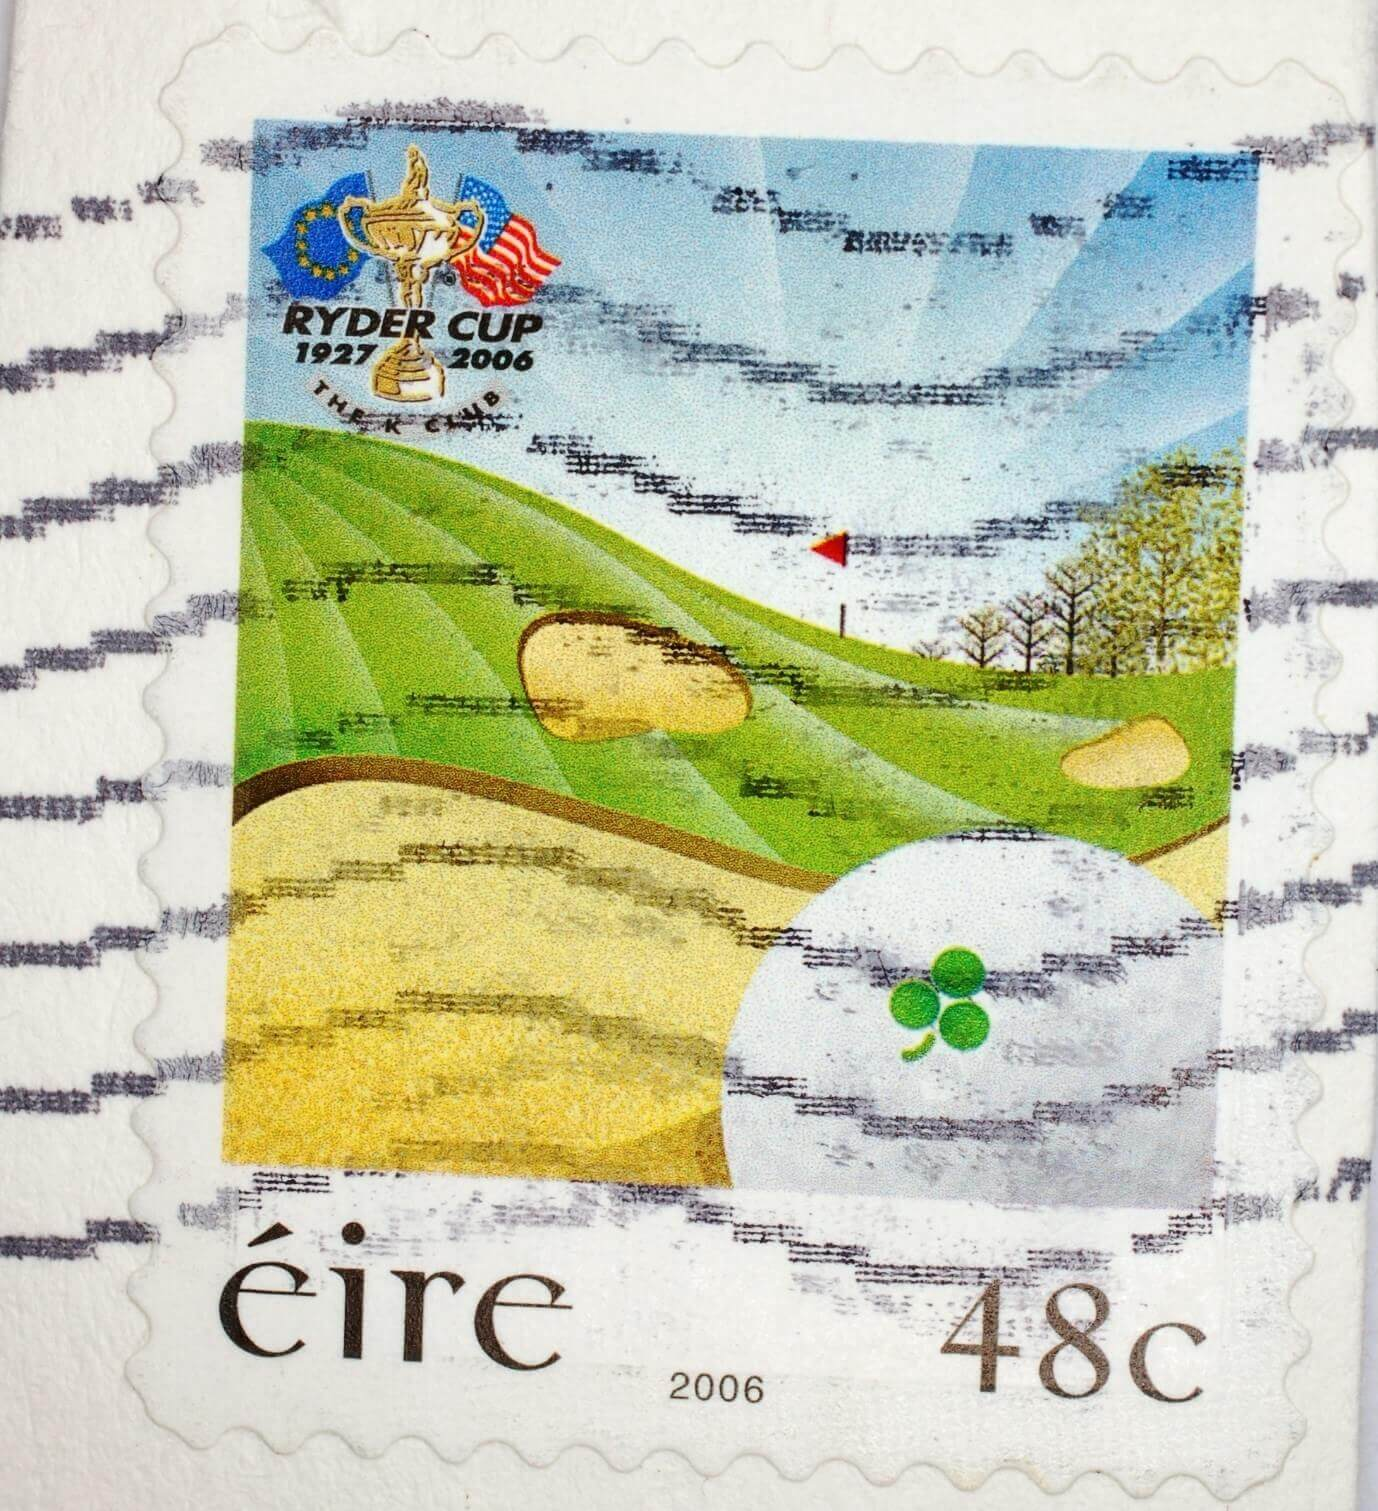 The 2006 Ryder Cup